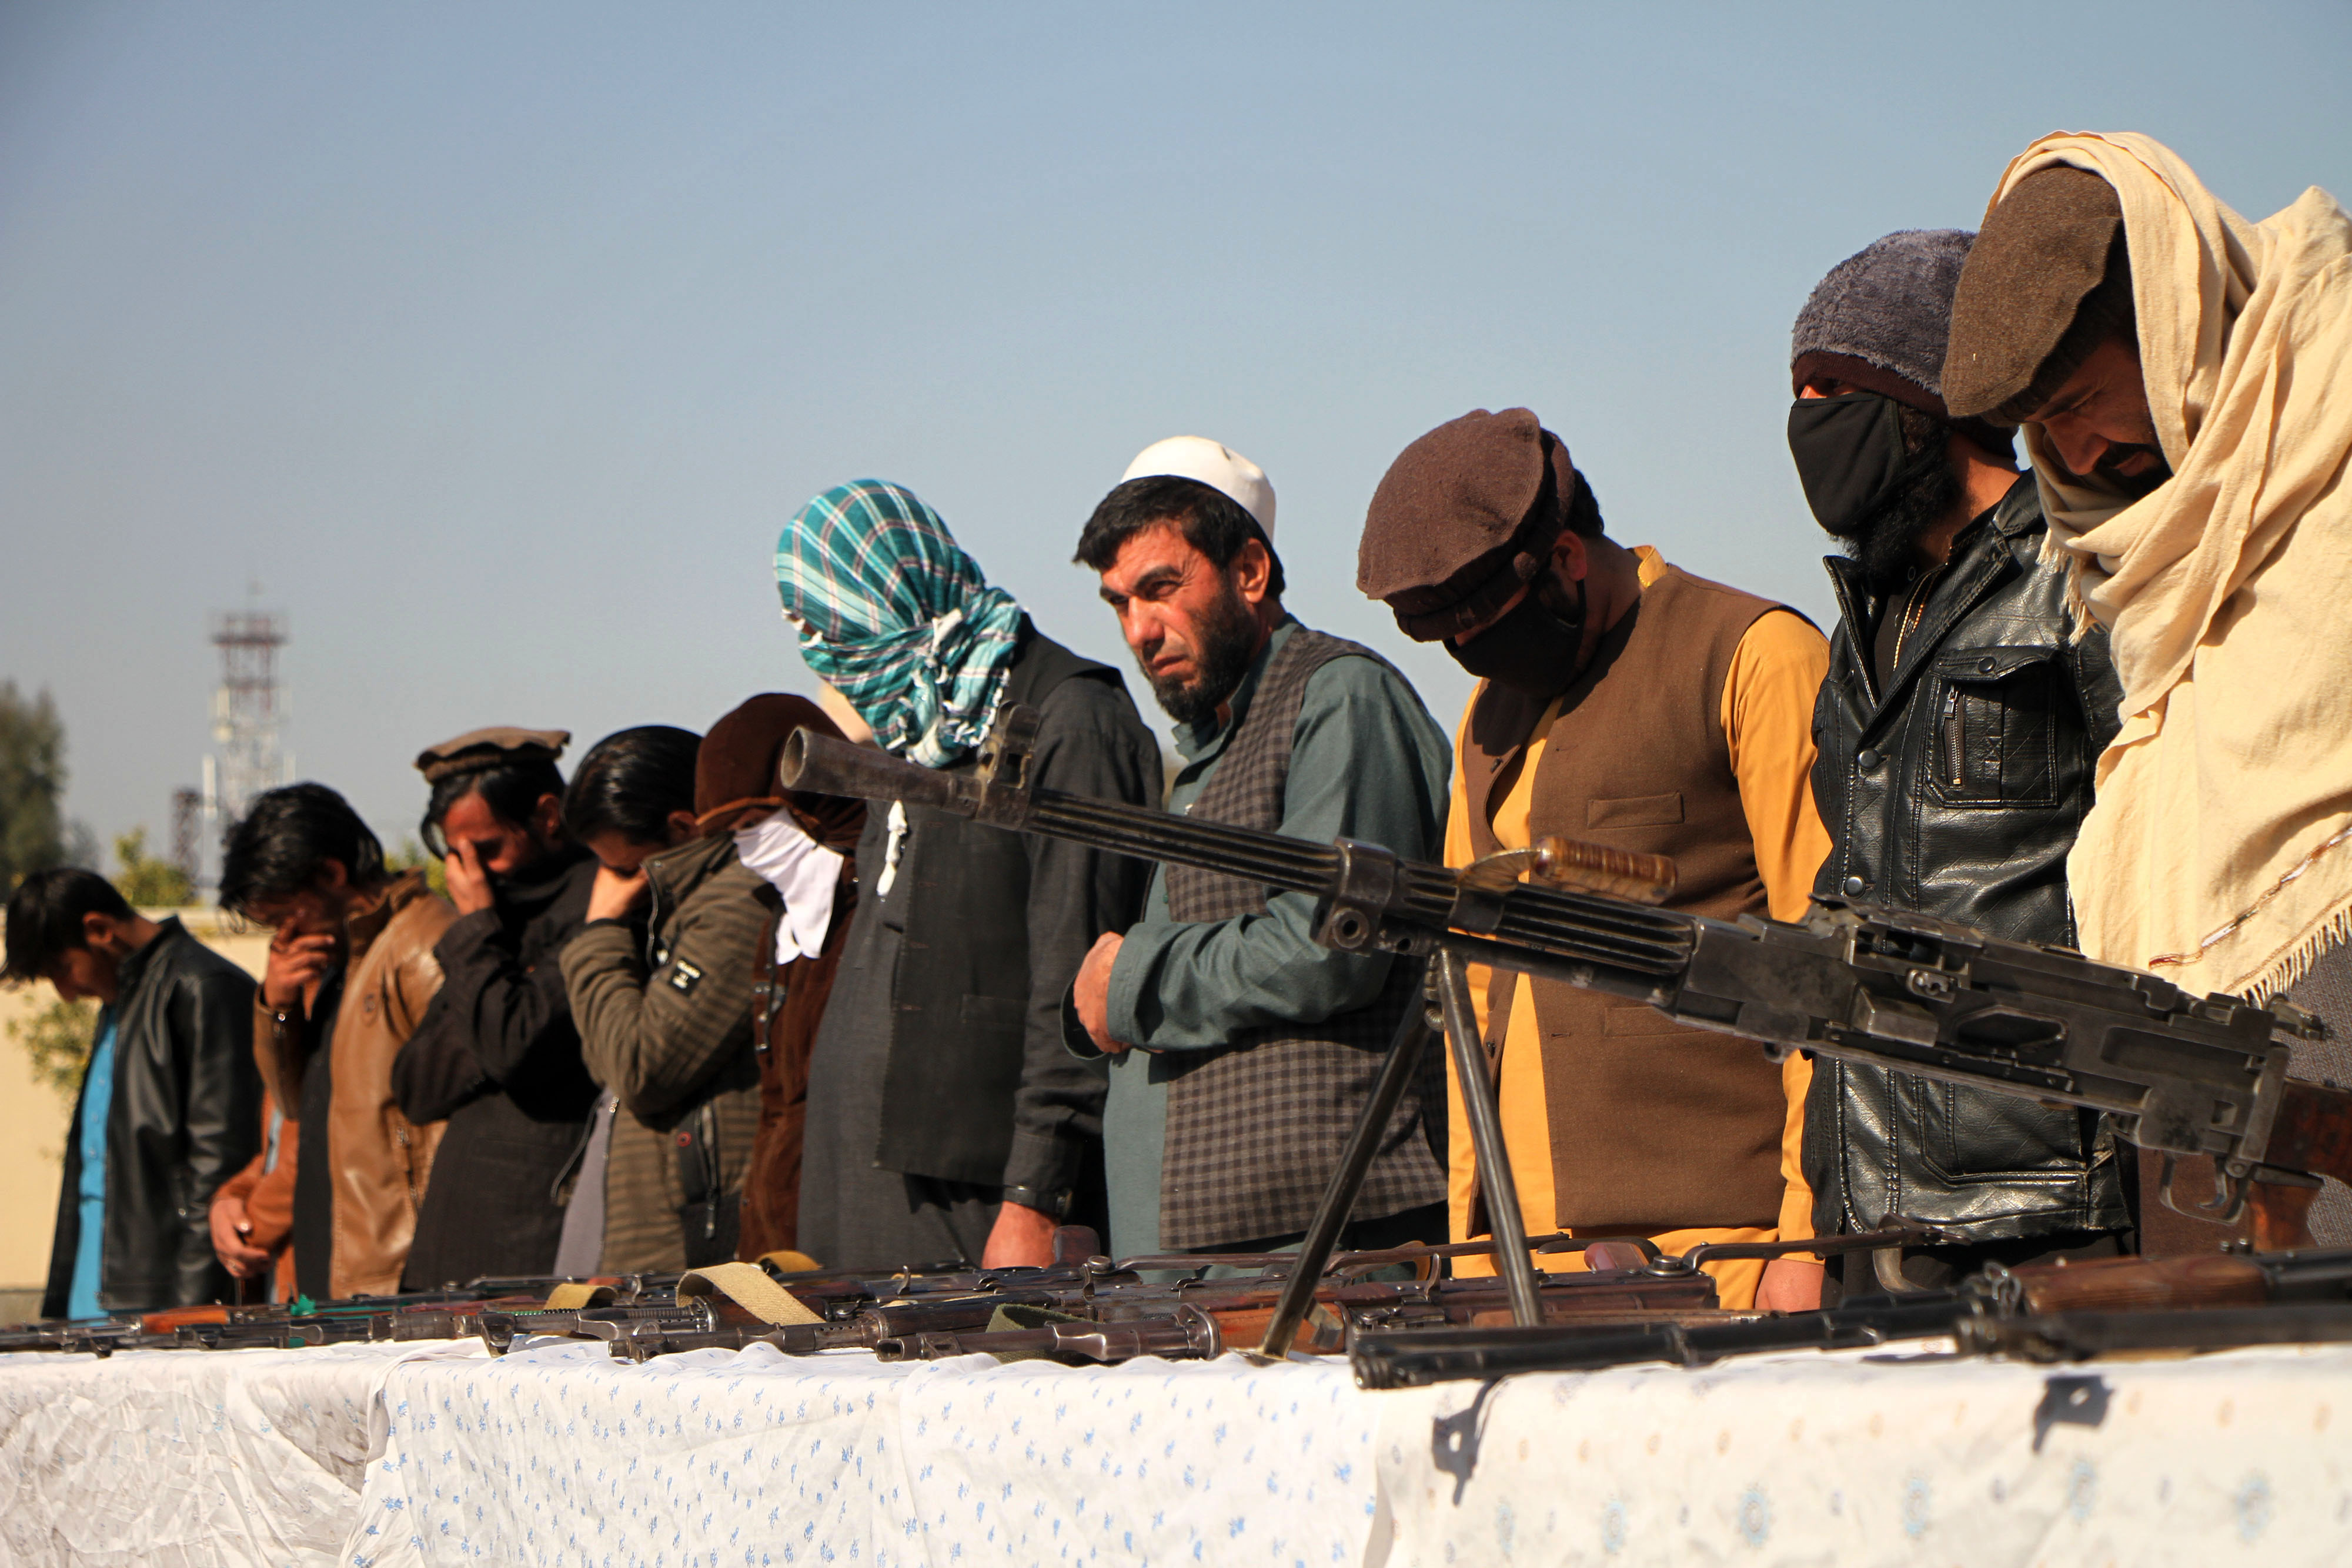 Taliban fighters in Jalalabad, Afghanistan, stand behind a low stone wall and put their weapons on top of it in surrender.